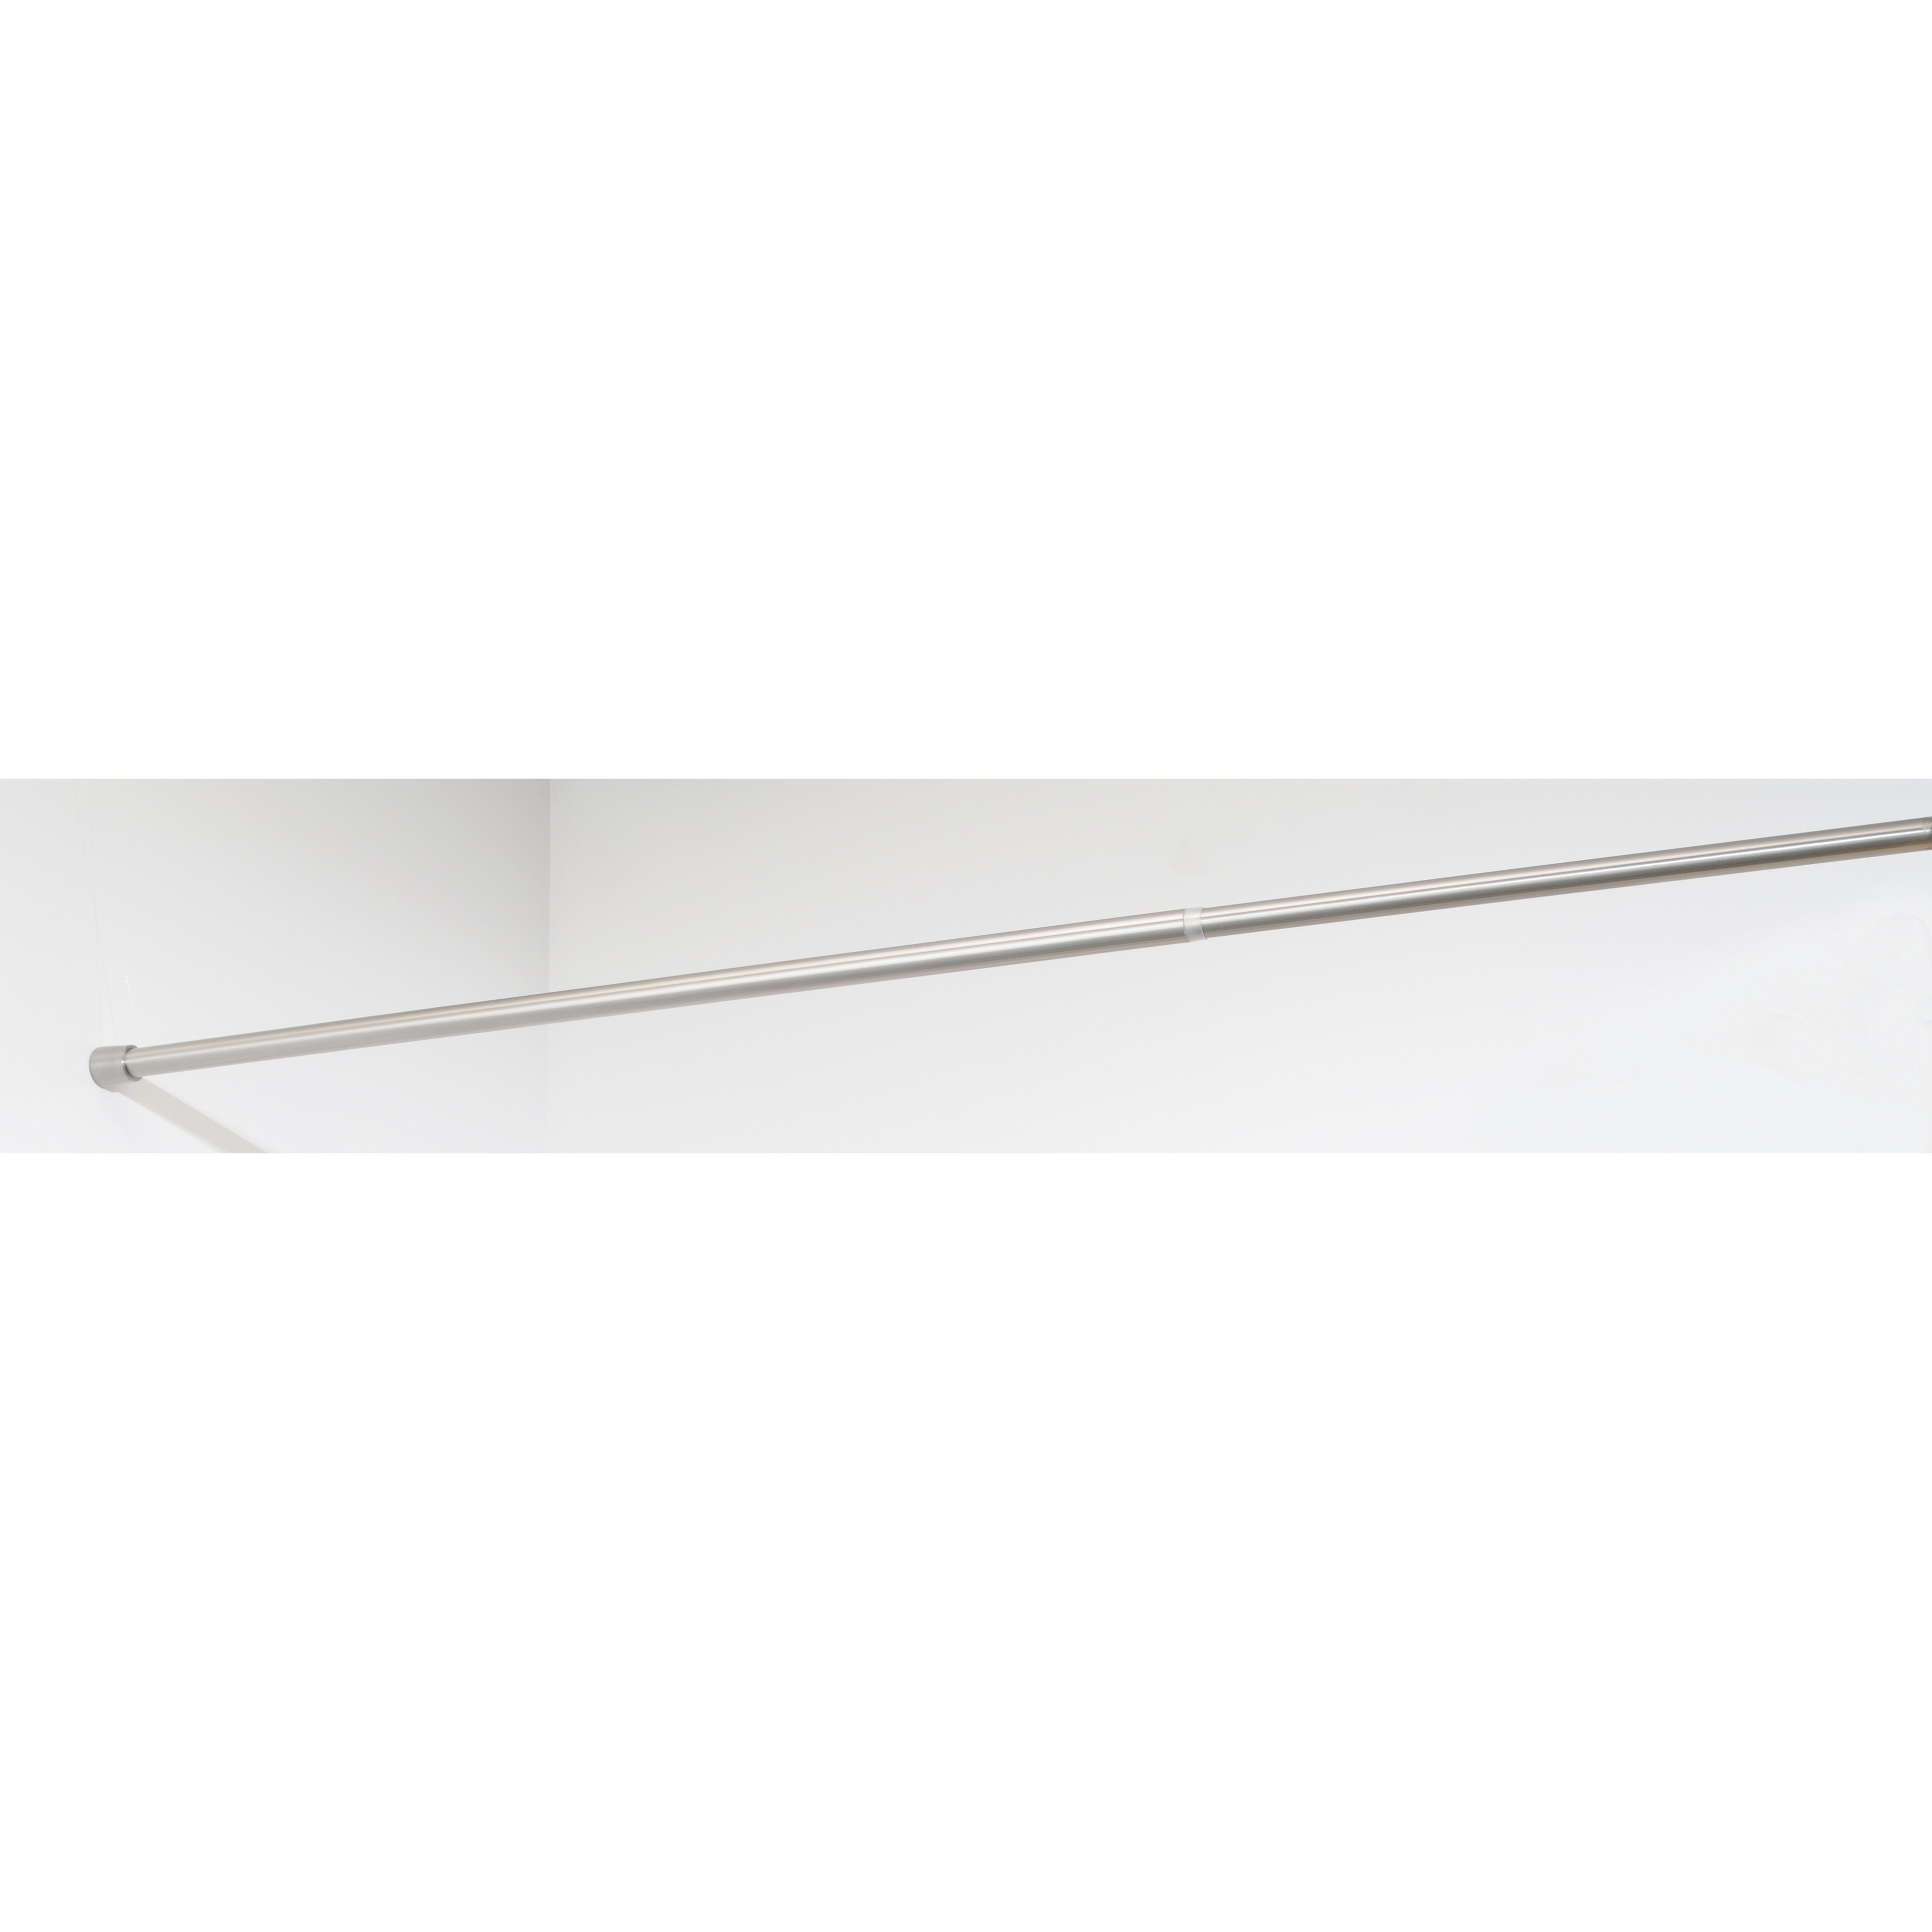 InterDesign Forma Small Shower Curtain Tension Rod